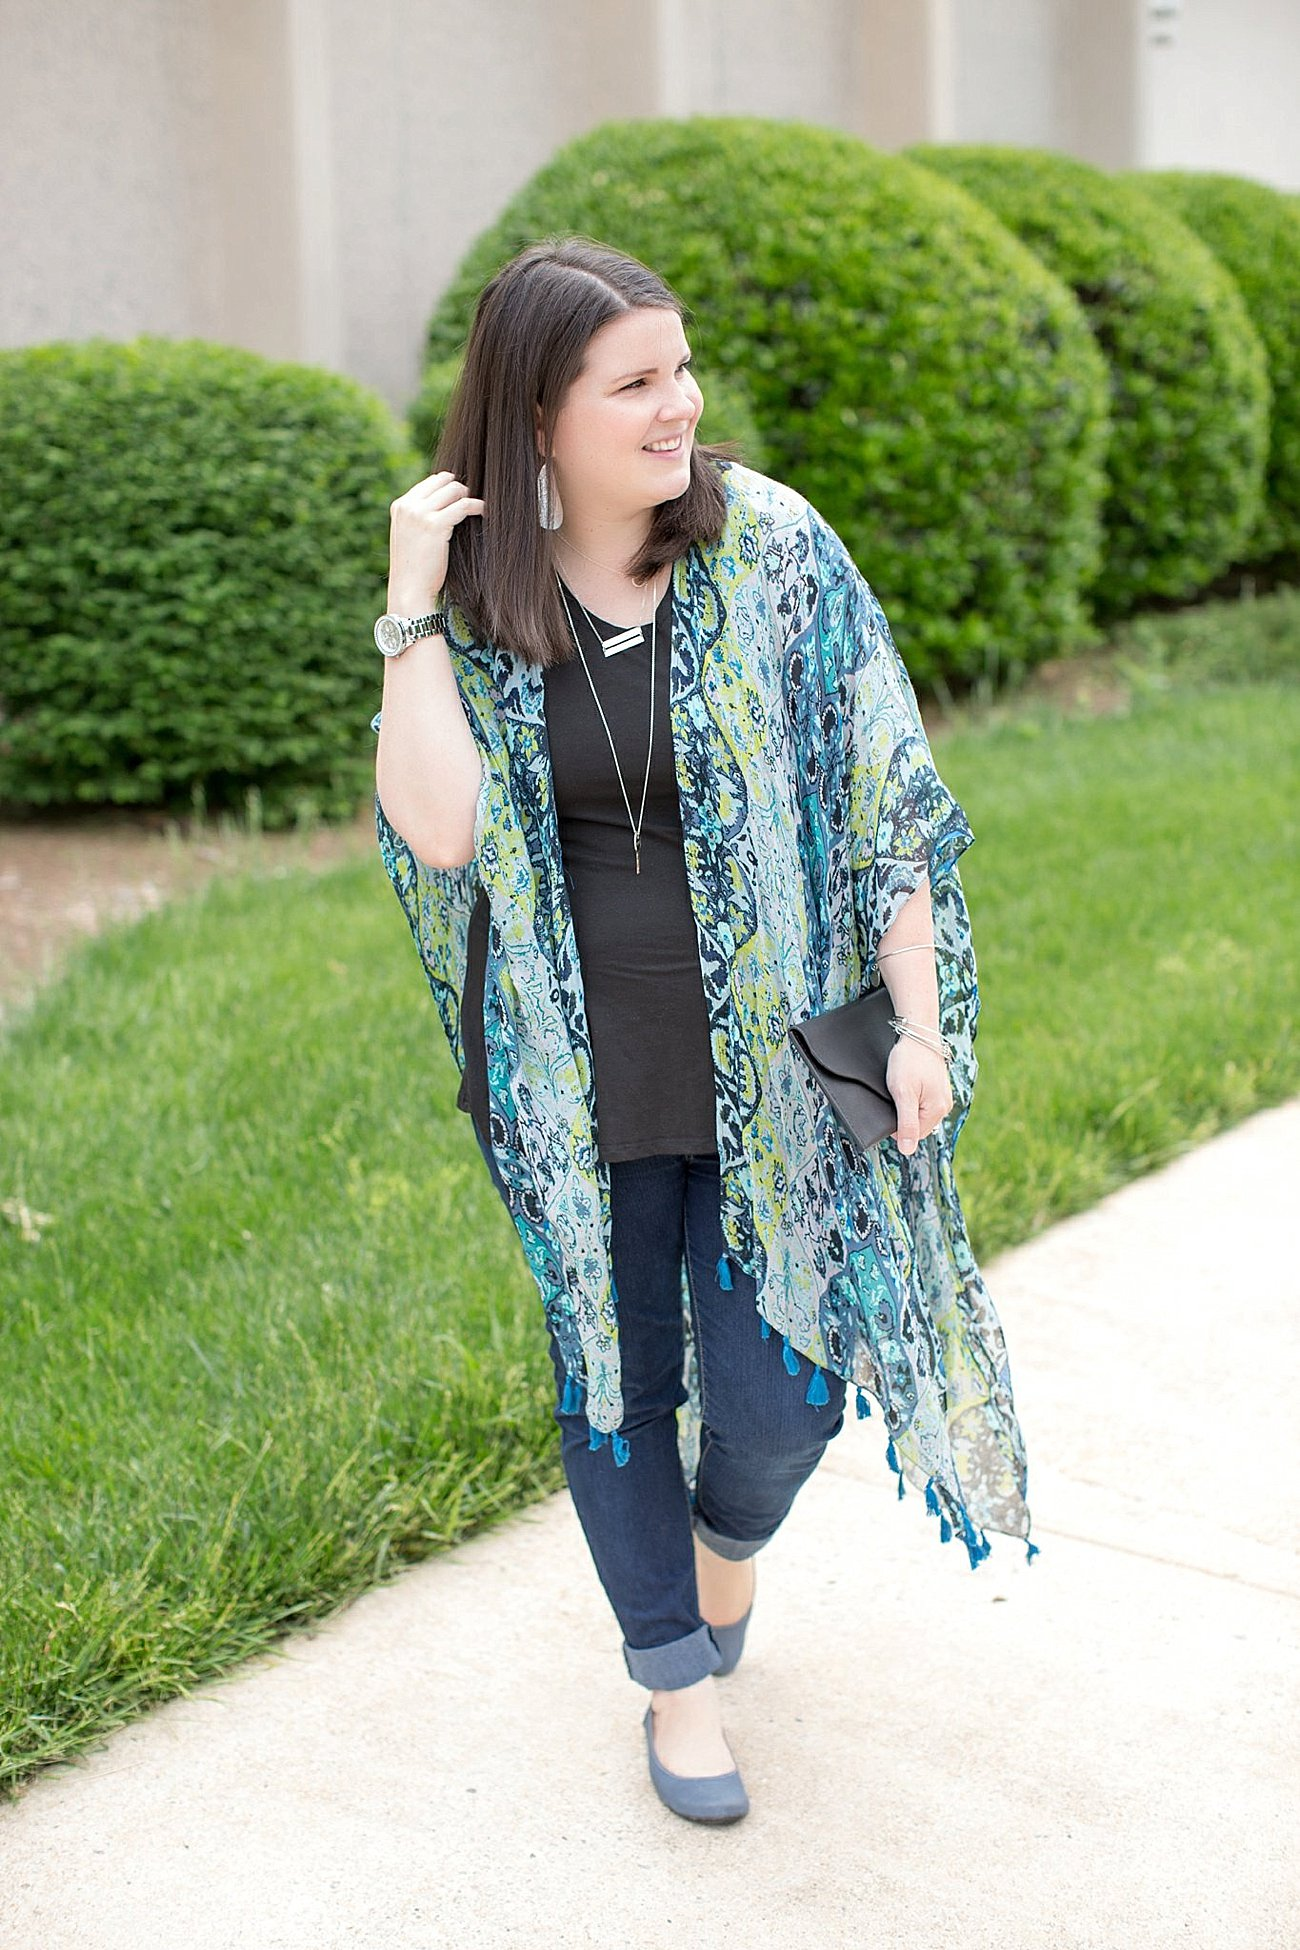 The Flourish Market, Threads 4 Thought Ruana, Elegantees Vanessa top, The Root Collective, Ethical Fashion and Style | North Carolina Fashion Blogger (1)